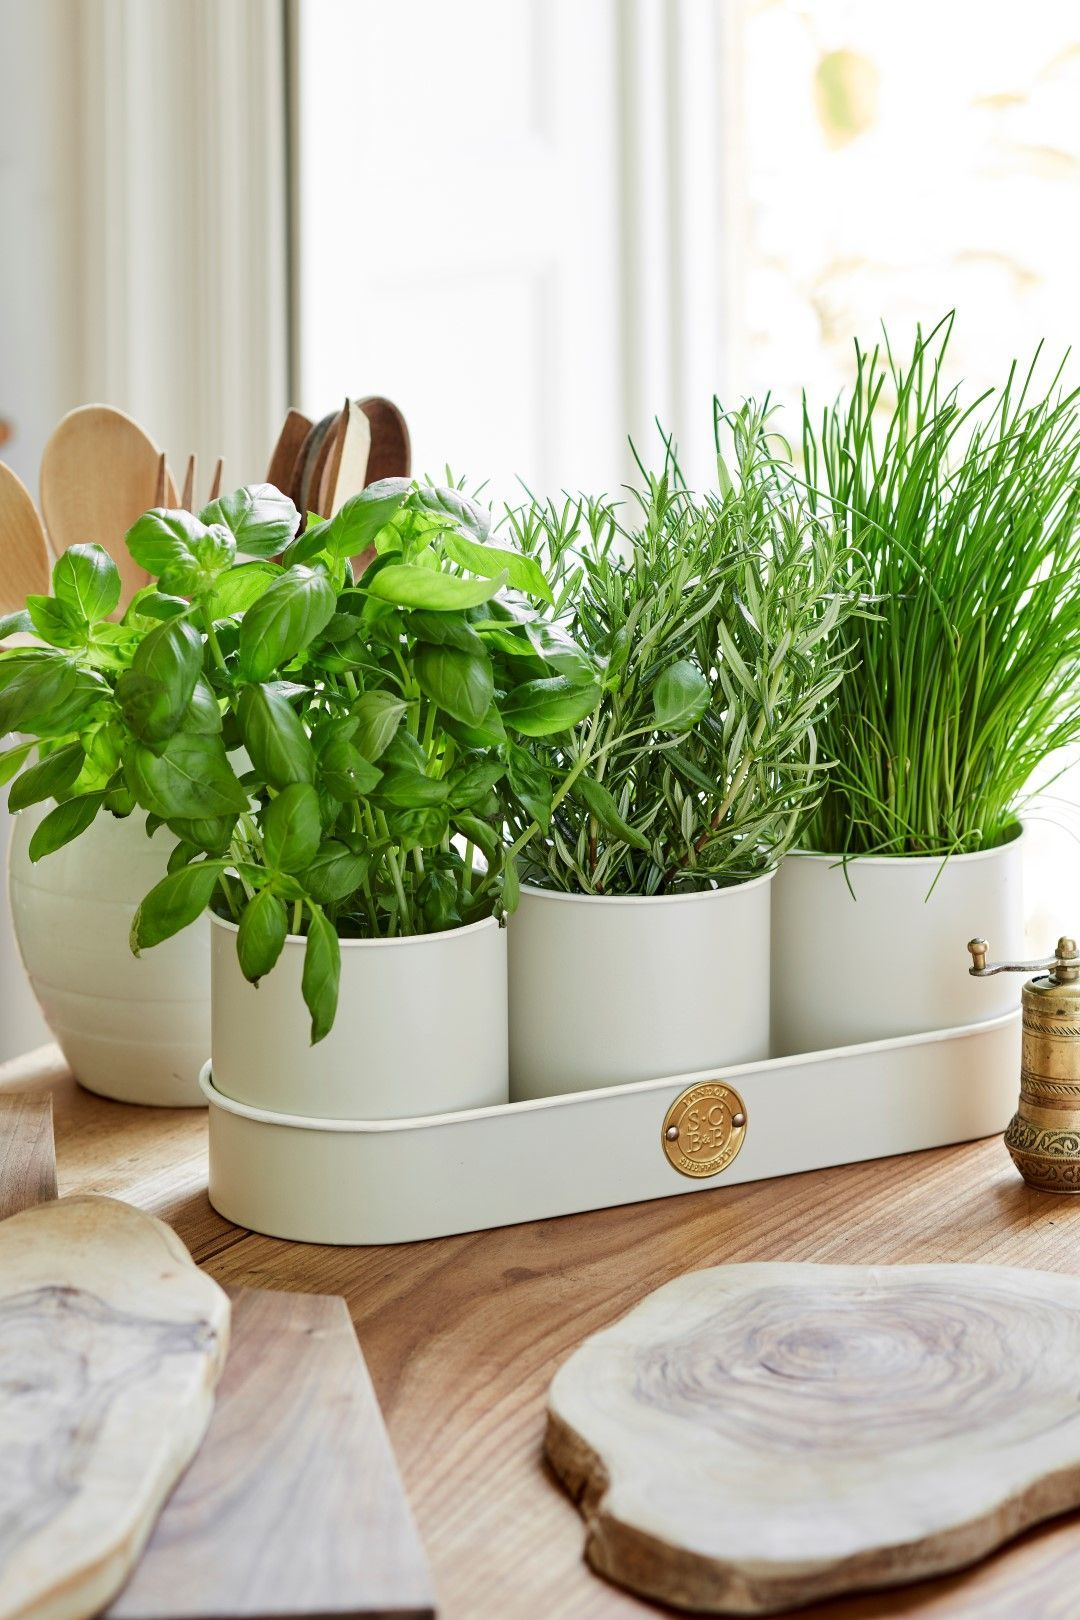 grow your own mini herb garden with this handy trio of herb pots from sophie conran and burgon on outdoor kitchen herb garden id=54114